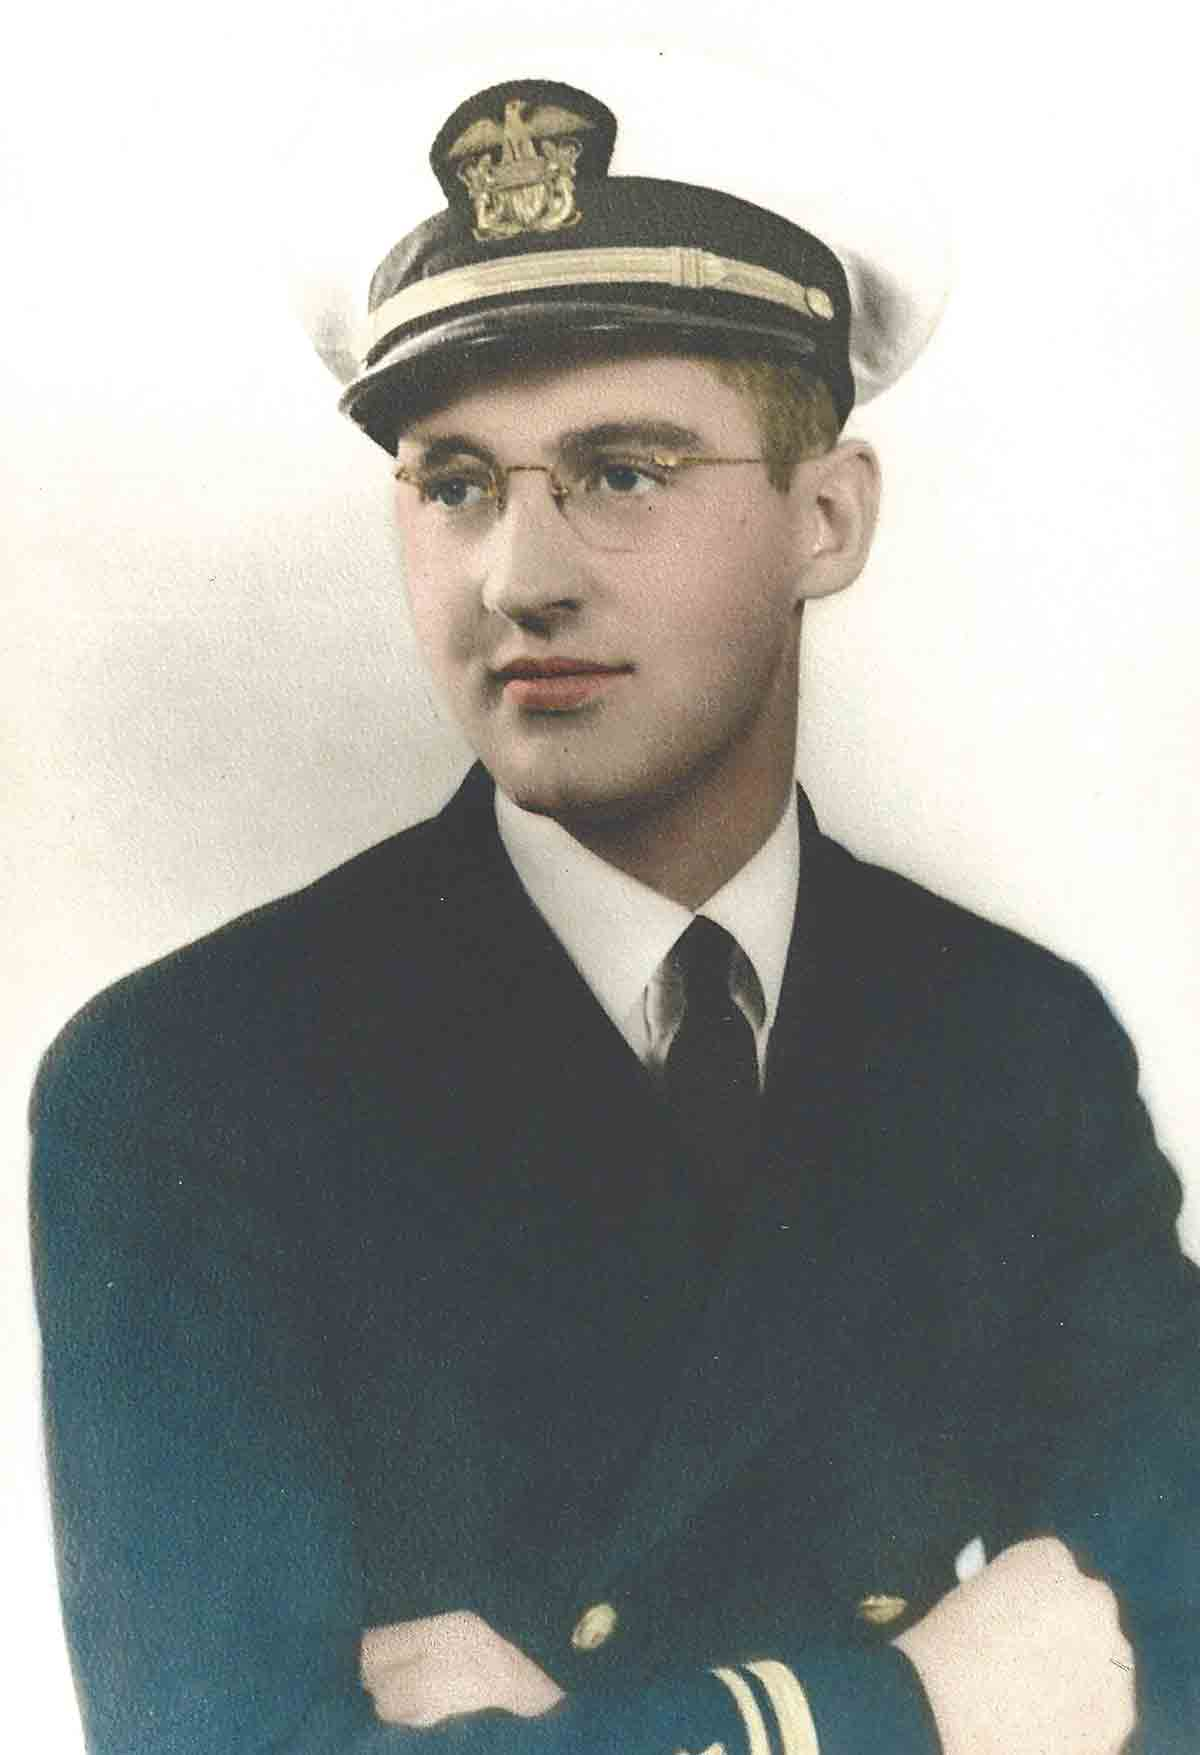 Aloysius Schmitt 	 	Pentagon upgrades WWII medal for Schmitt   (AP) The Pentagon has approved a Silver Star medal of heroism for a Navy chaplain from Iowa who's been credited with helping sailors escape a battleship during the Japanese attack on Pearl...